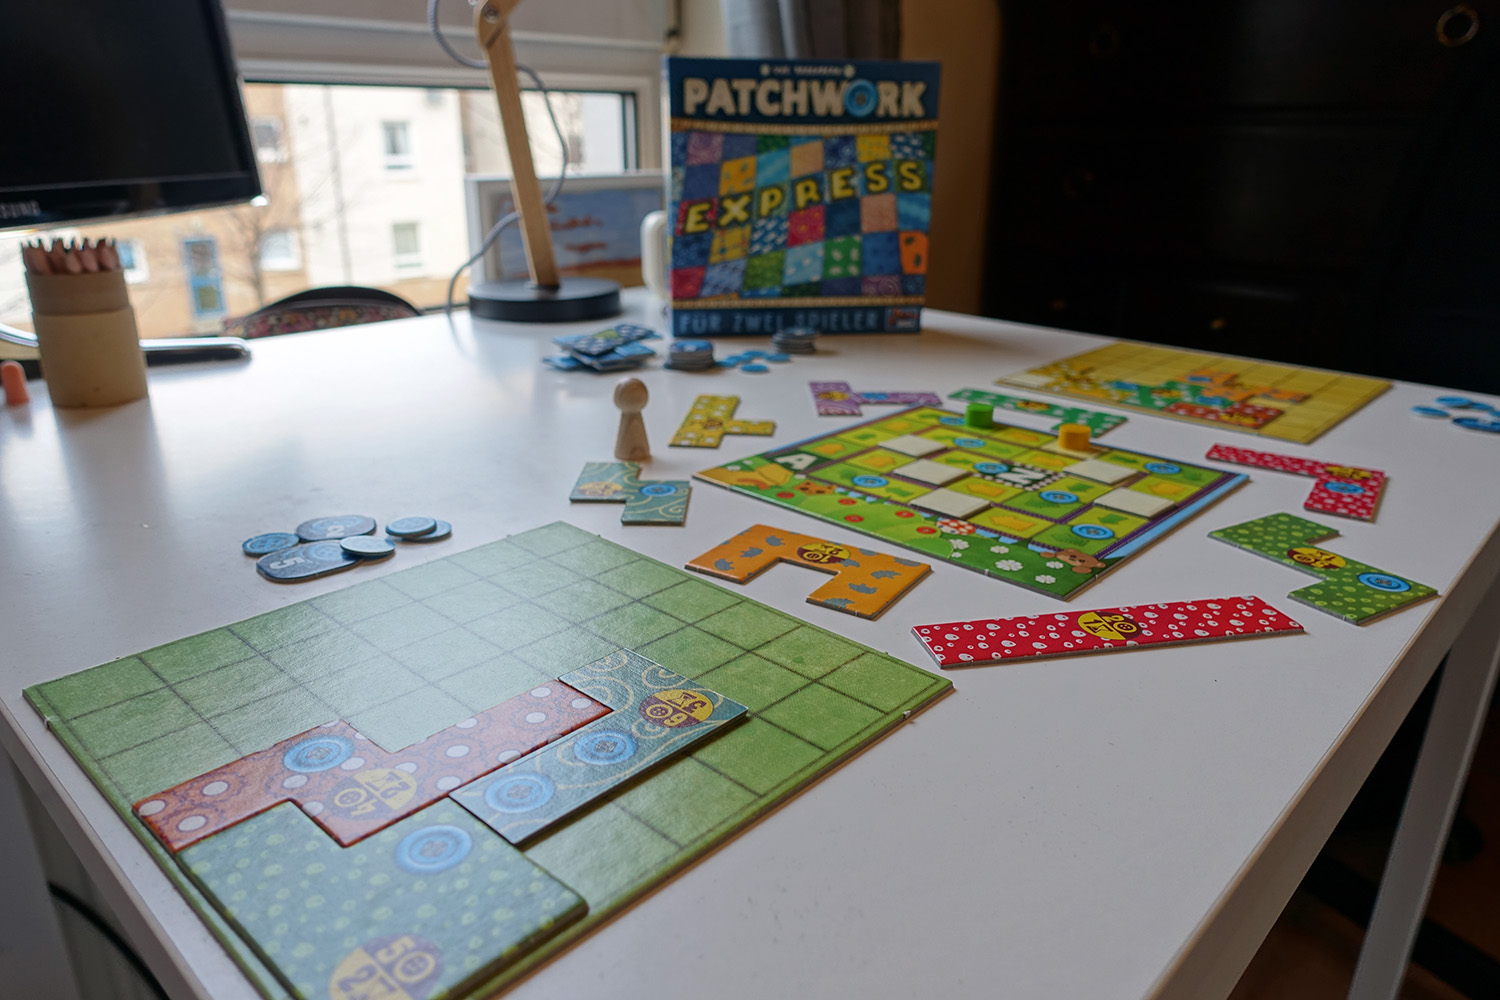 Test // Lass die Fetzen fliegen in Patchwork: Express!